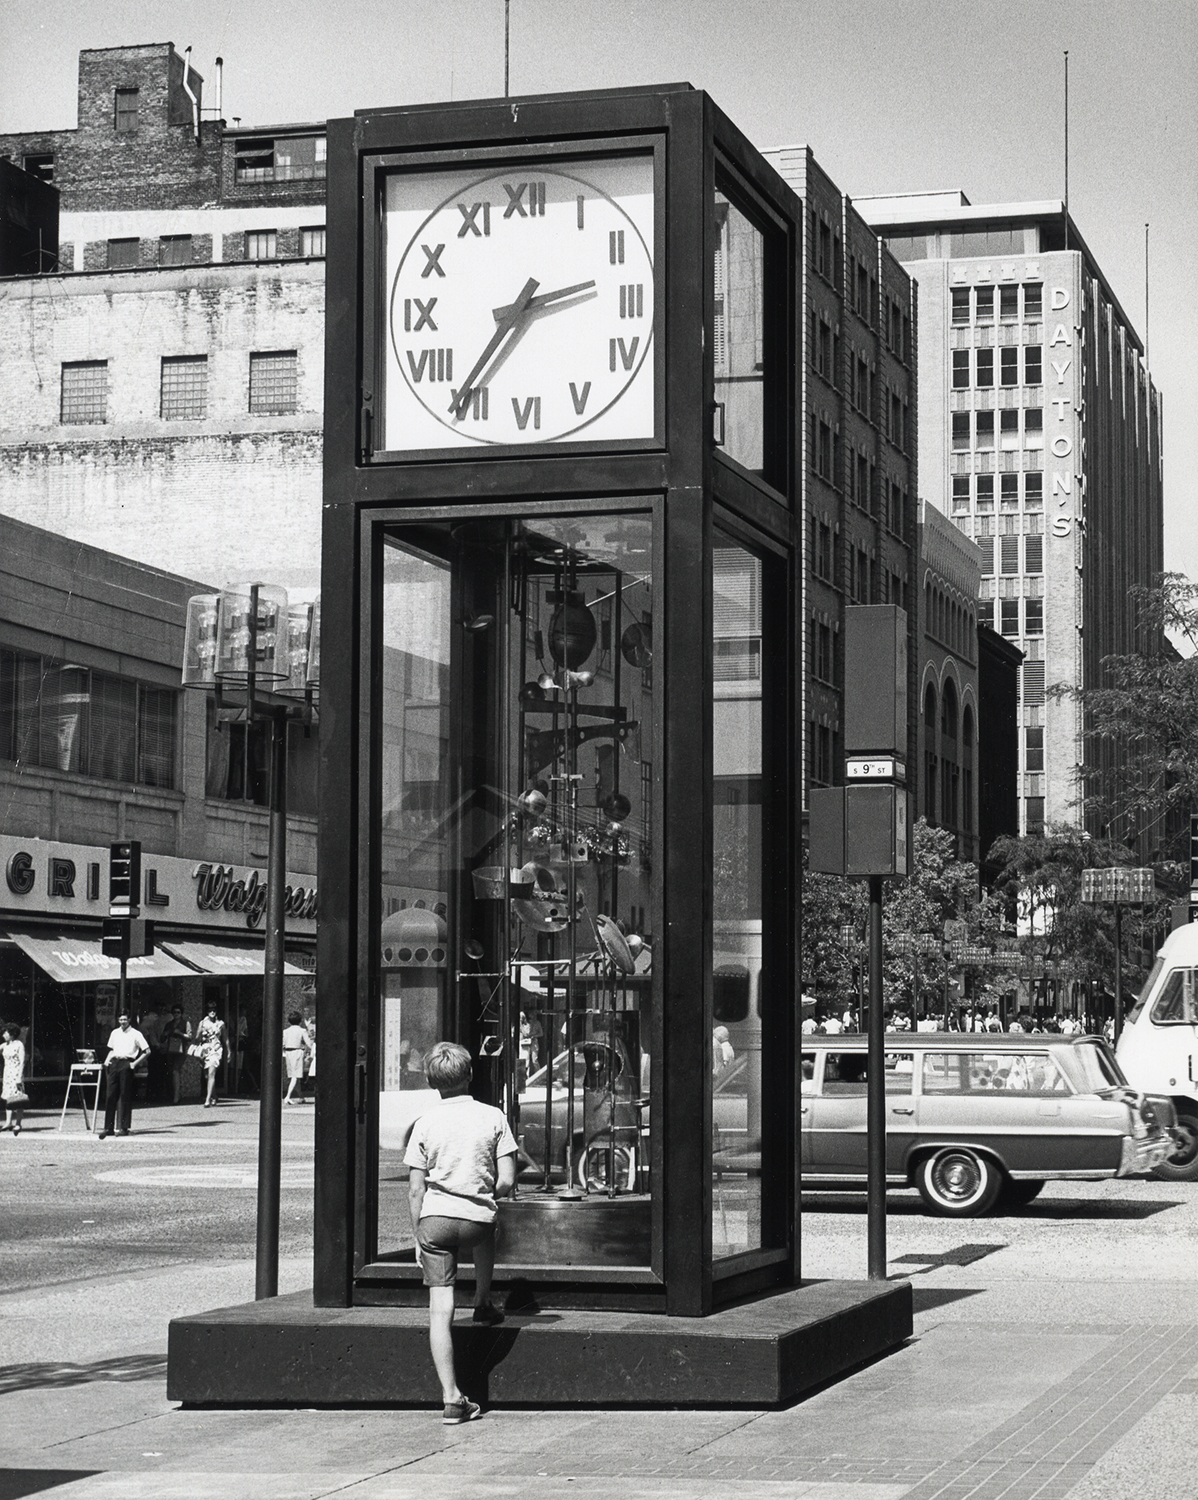 Sculpture Clock installed, 1968